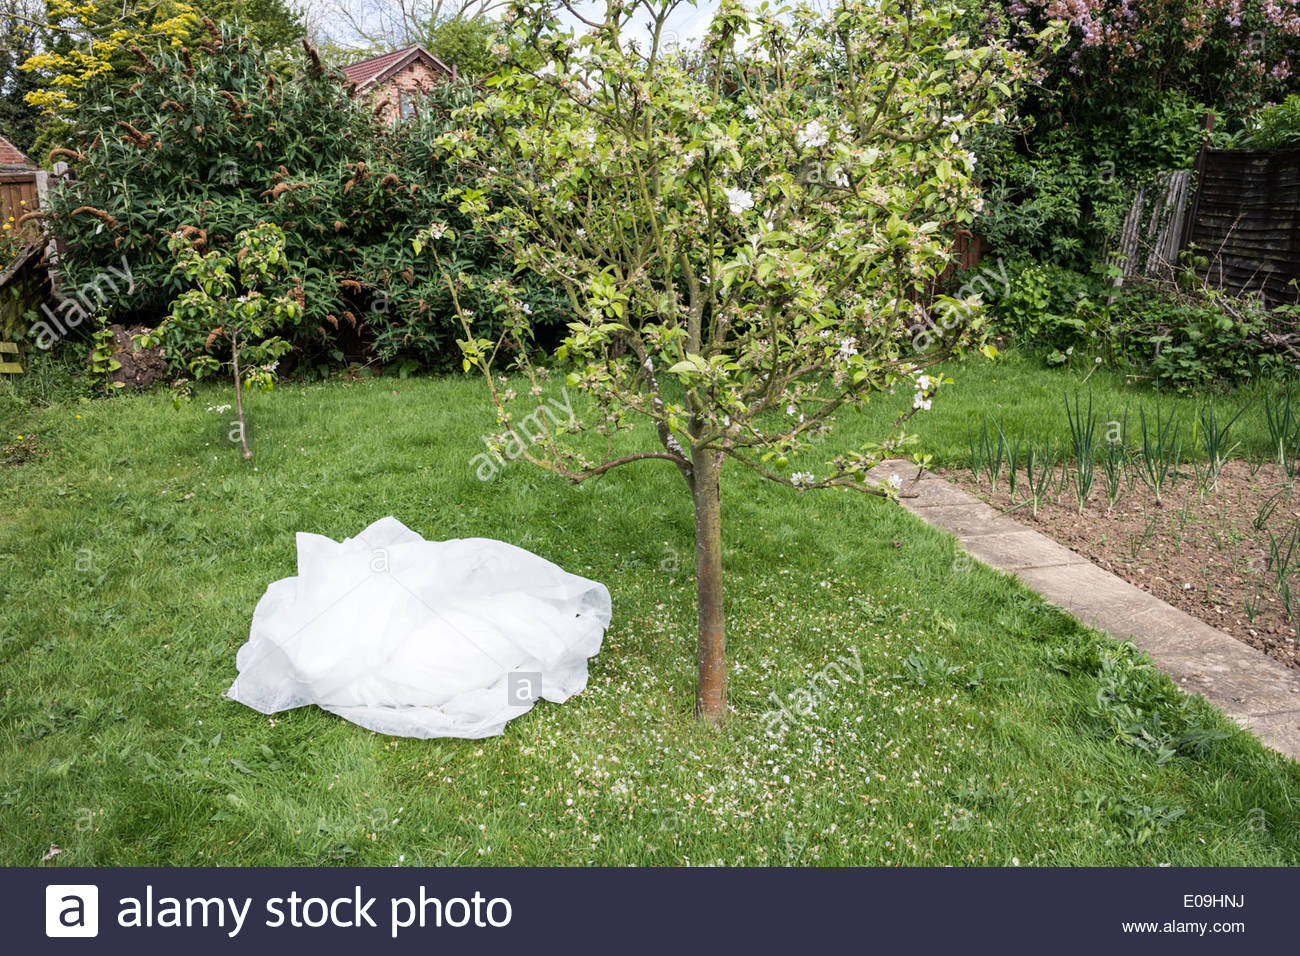 Apple tree and protective fleece used for frost protection - Stock Image